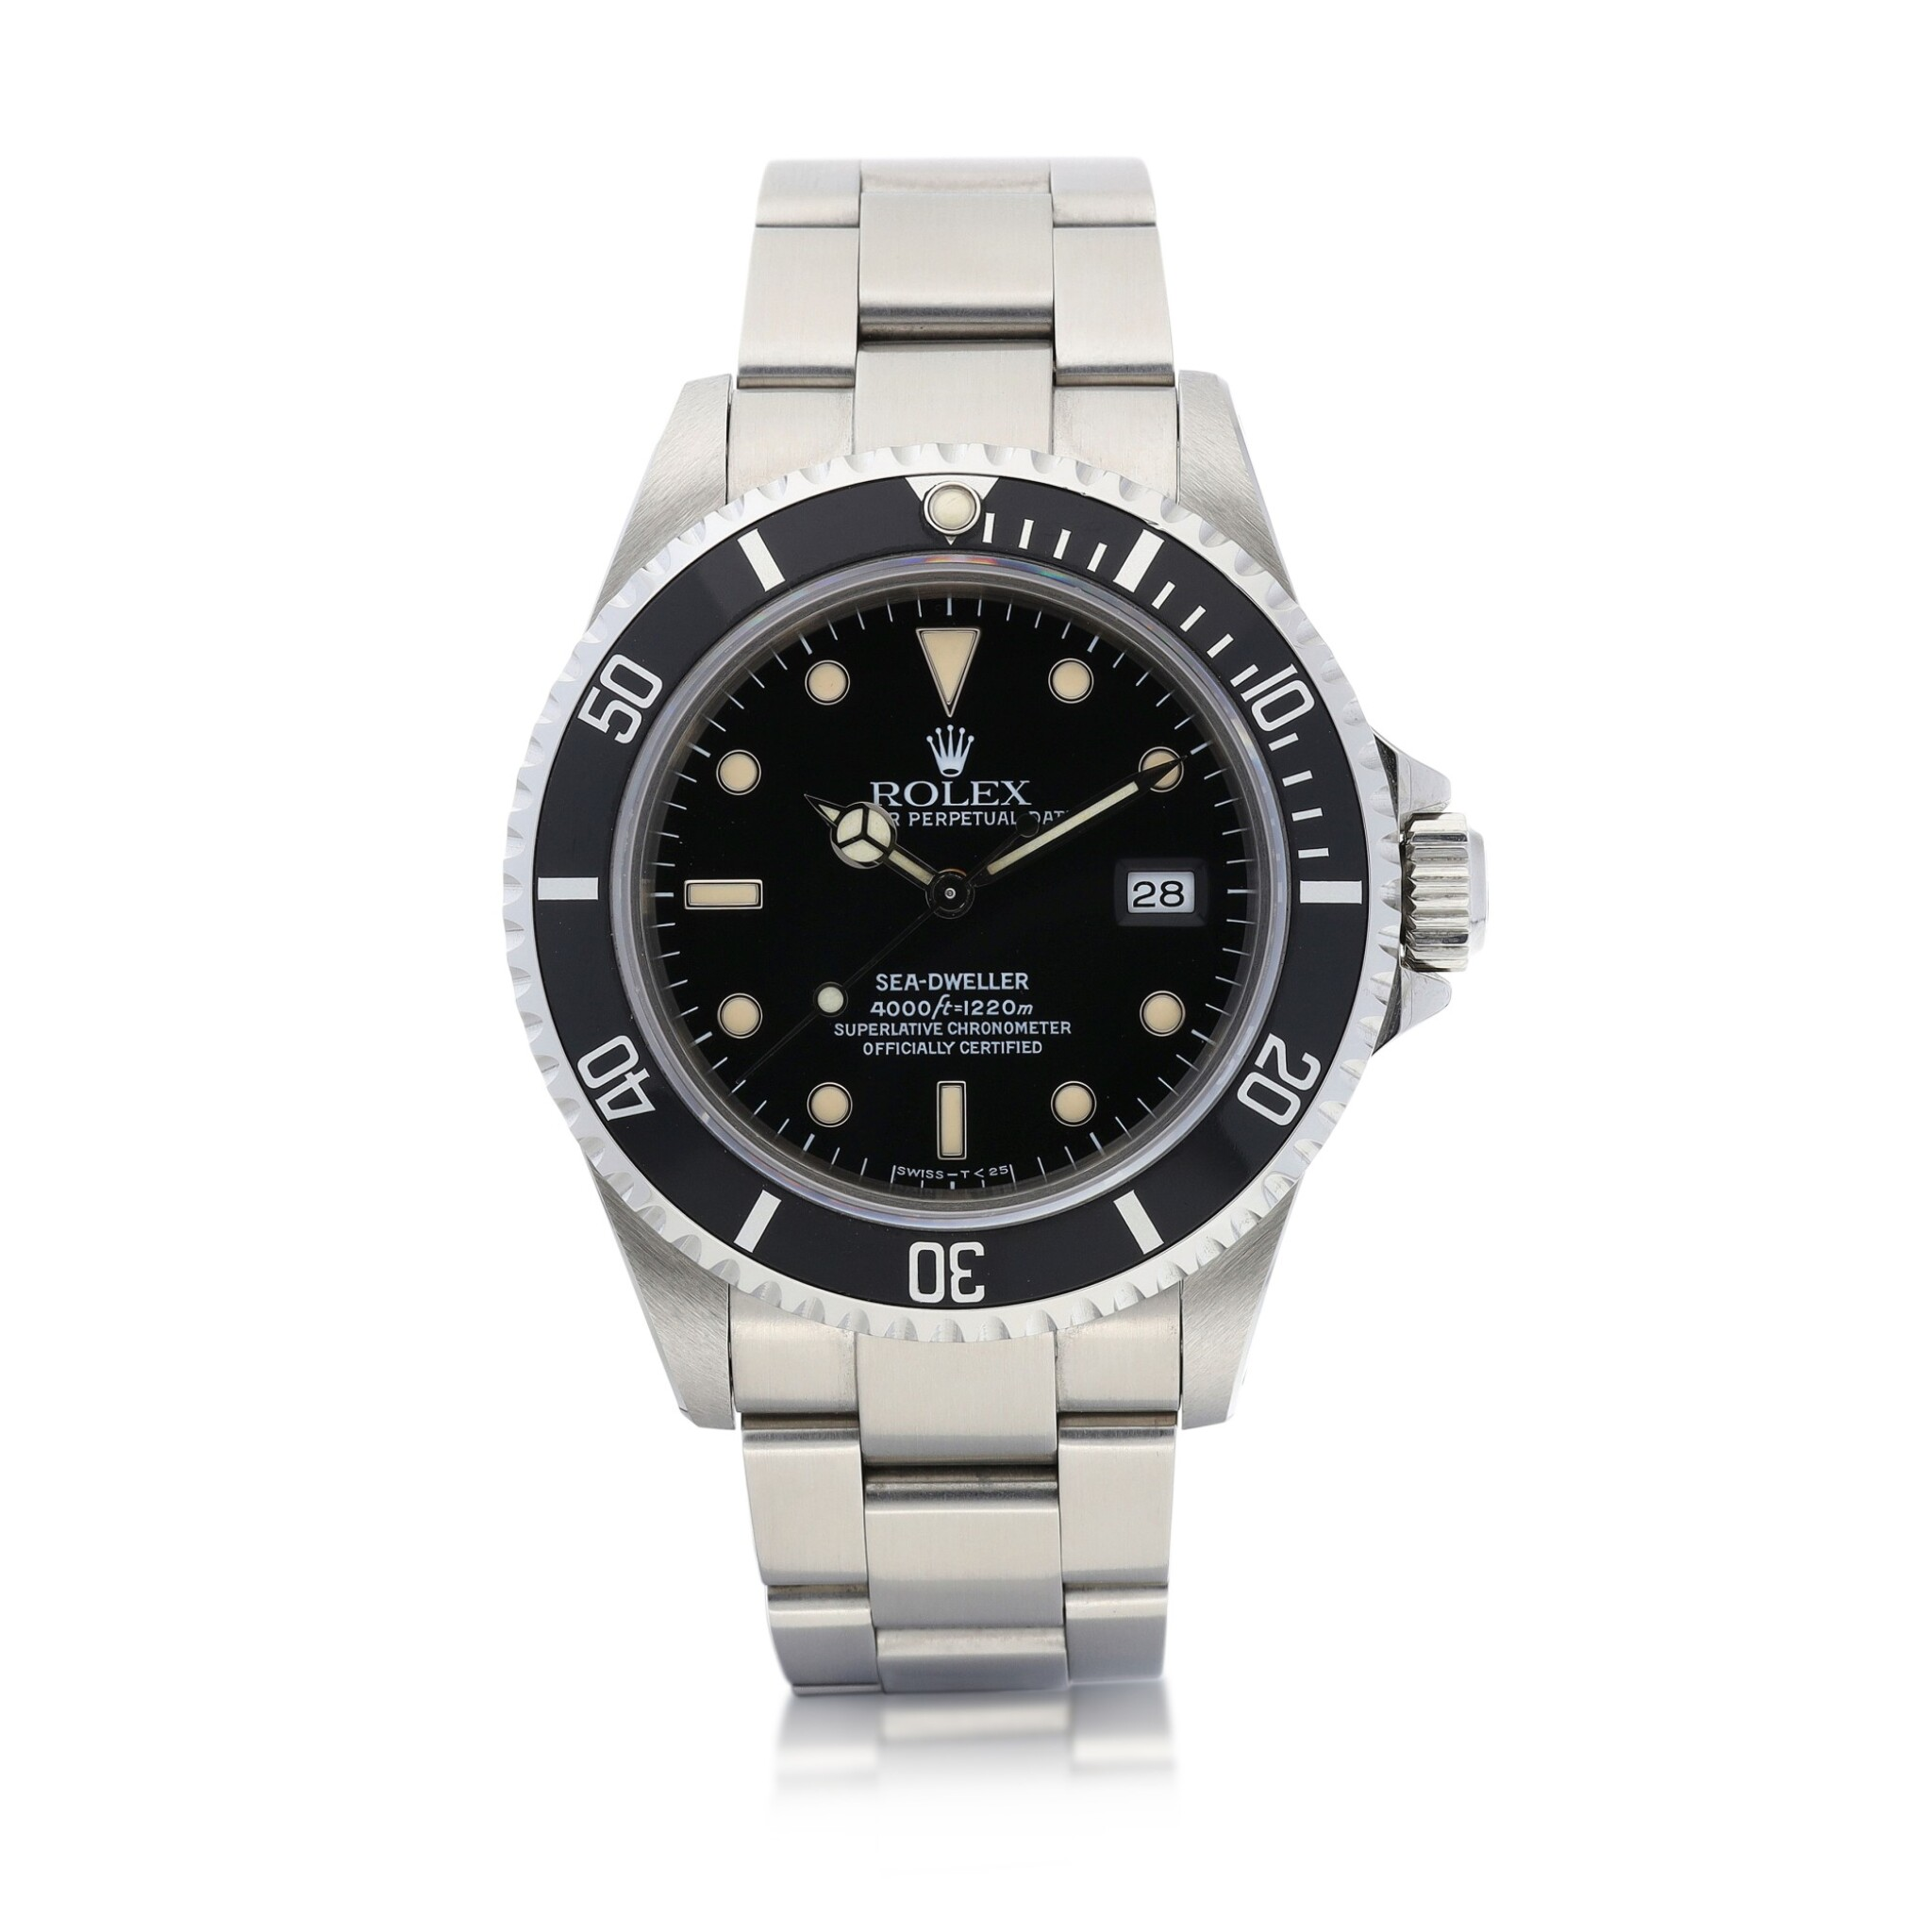 View 1 of Lot 8037. Rolex | Sea-Dweller, Reference 16600, A stainless steel wristwatch with date and bracelet, Circa 1991 | 勞力士 | Sea-Dweller 型號16600   精鋼鏈帶腕錶,備日期顯示,約1991年製.